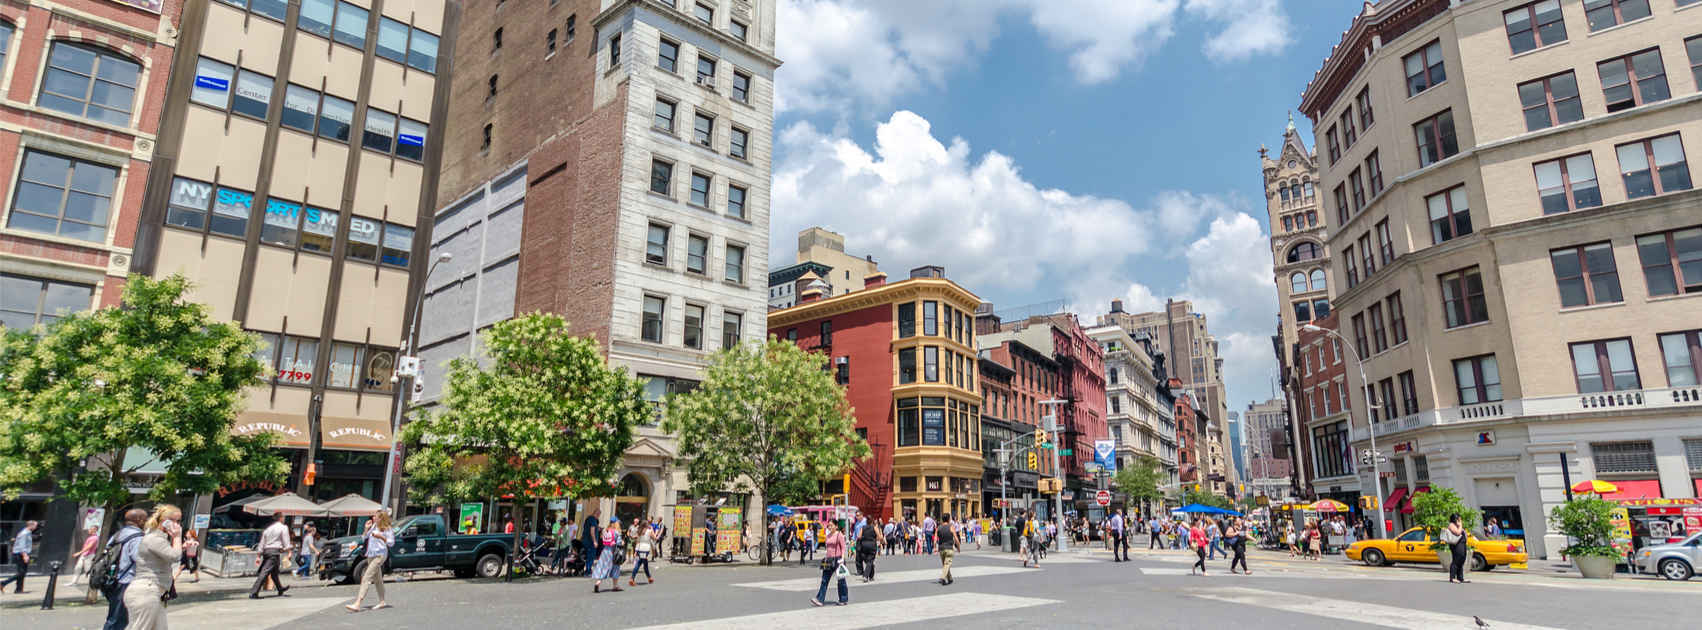 Panorama of Union Square Neighborhood in New York